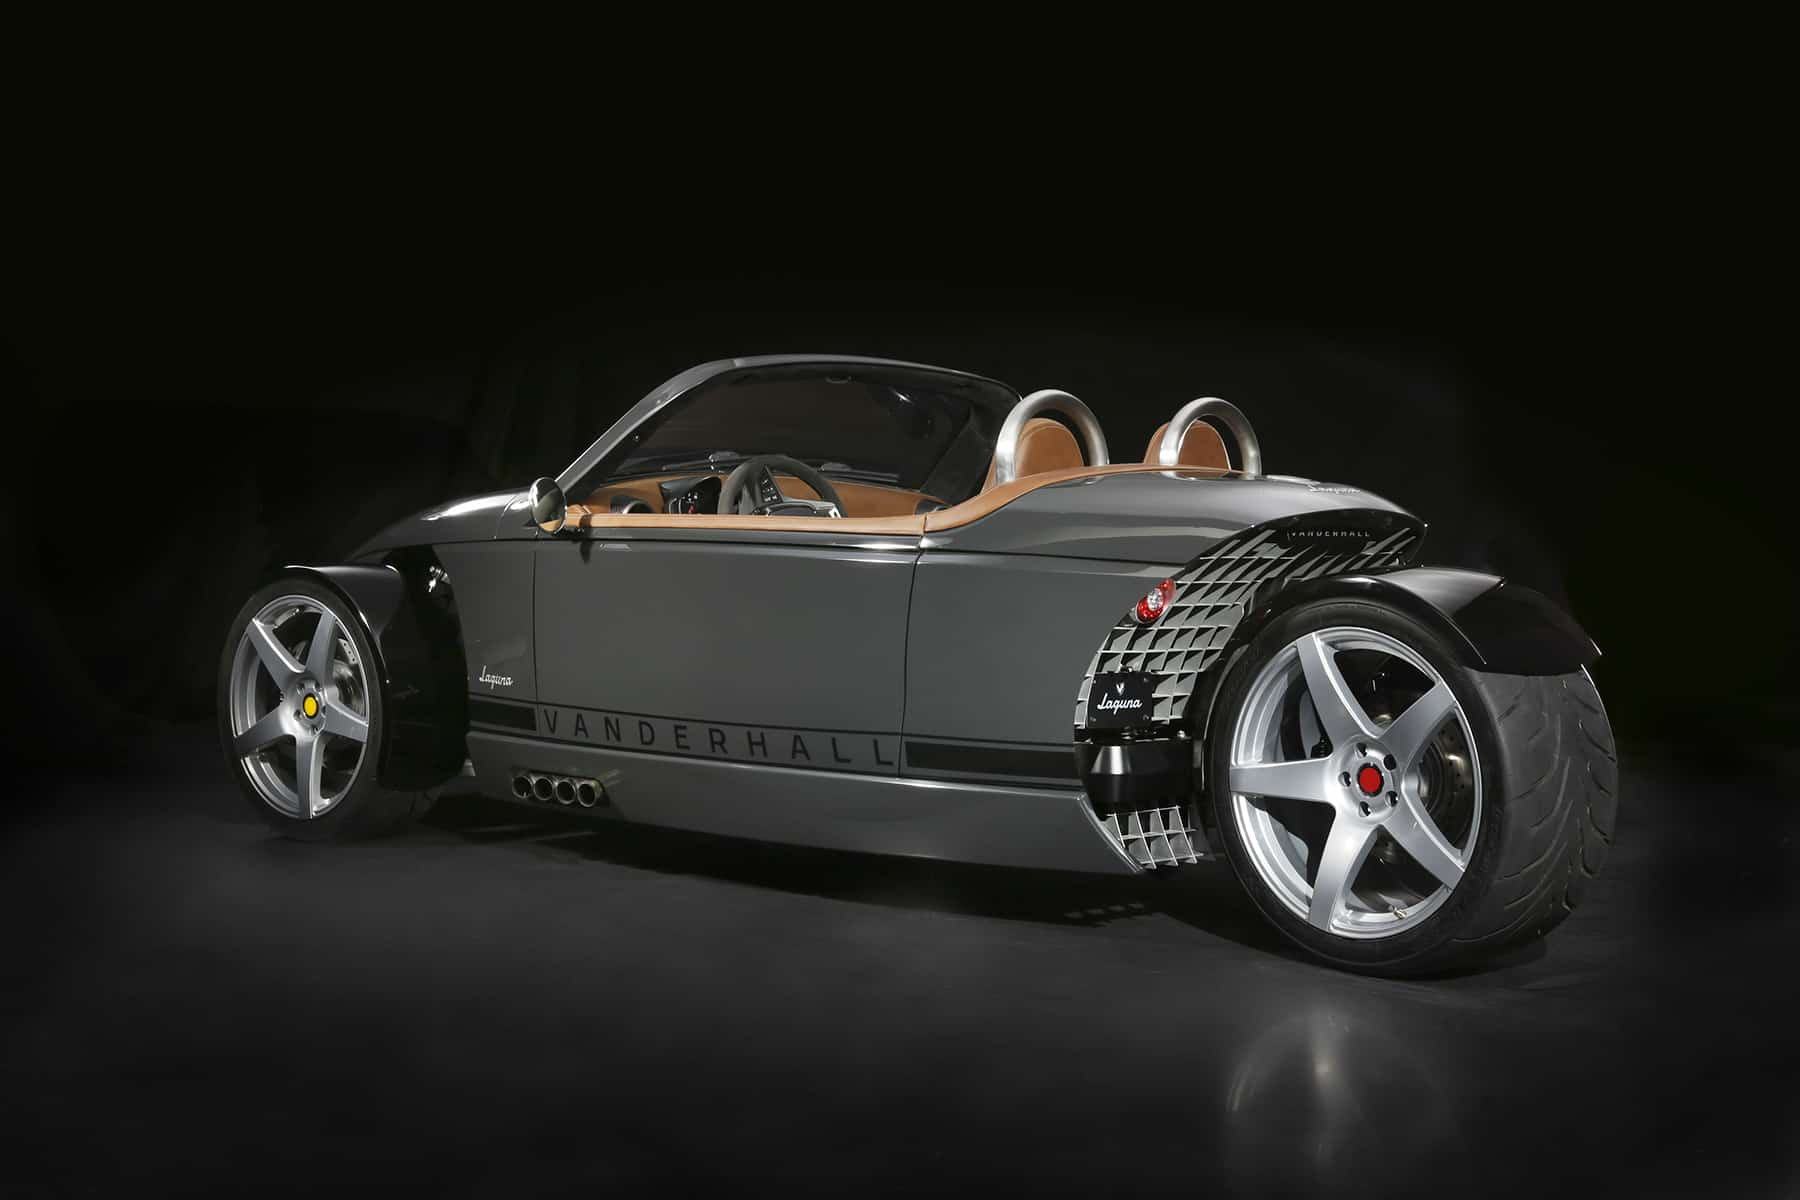 Vanderhall Laguna - Pebble Beach Edition